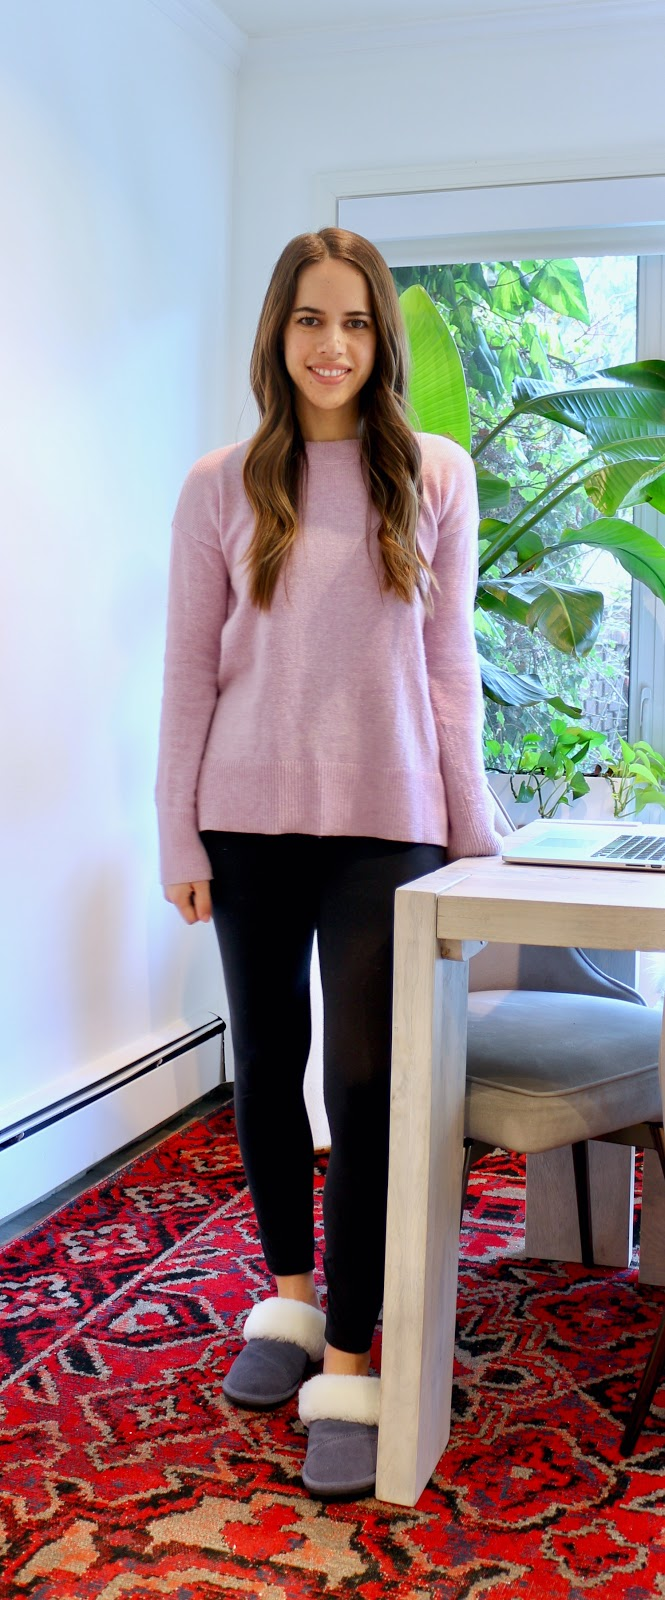 Jules in Flats - Crewneck Tunic Sweater with Leggings (Easy Work from Home Outfit)